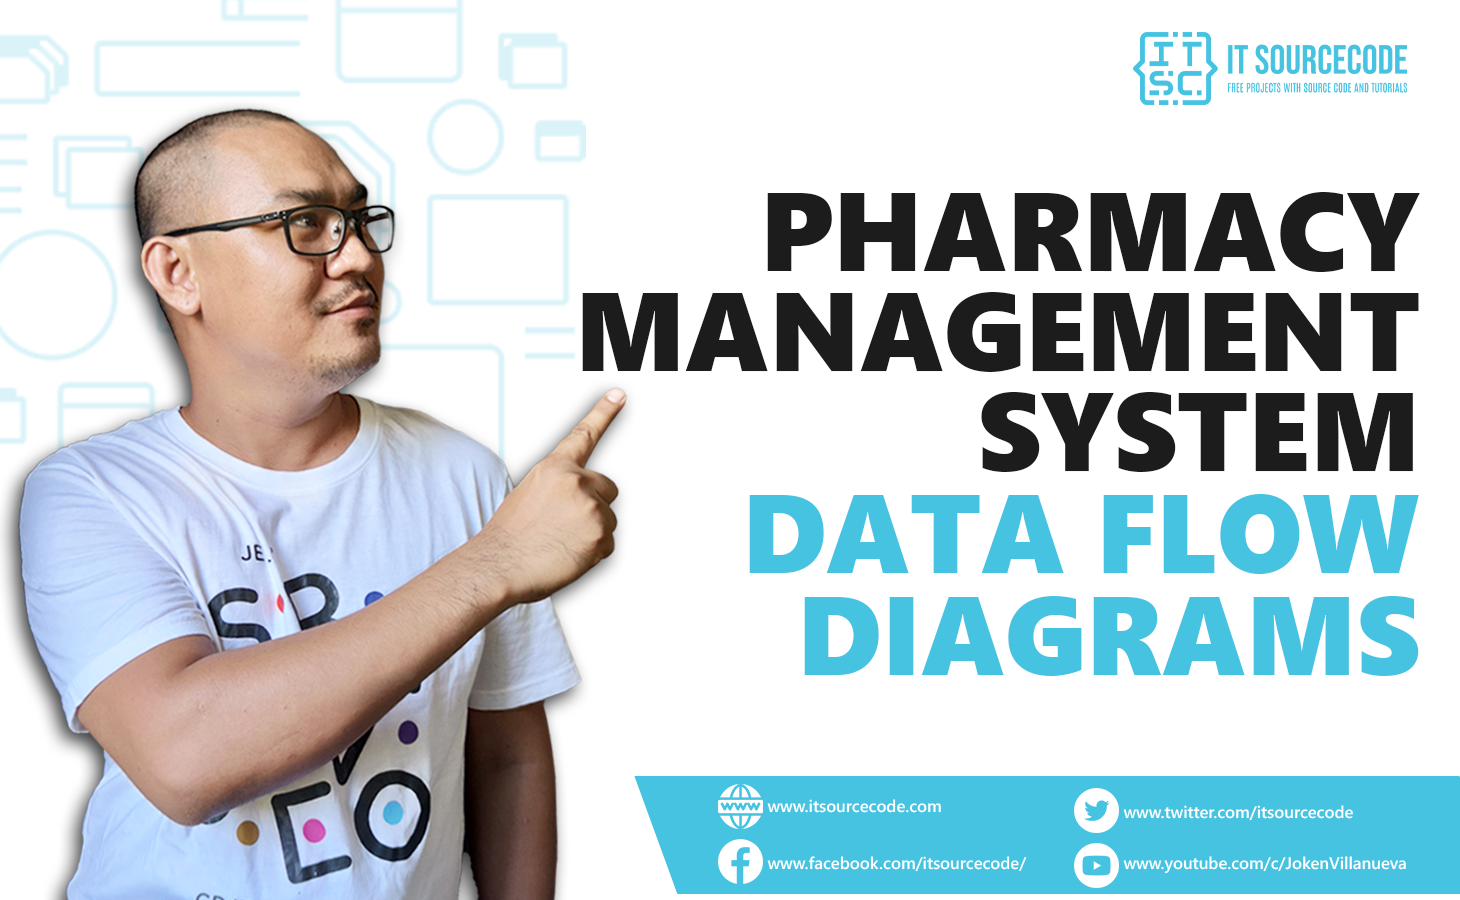 DFD Diagram for Pharmacy Management System